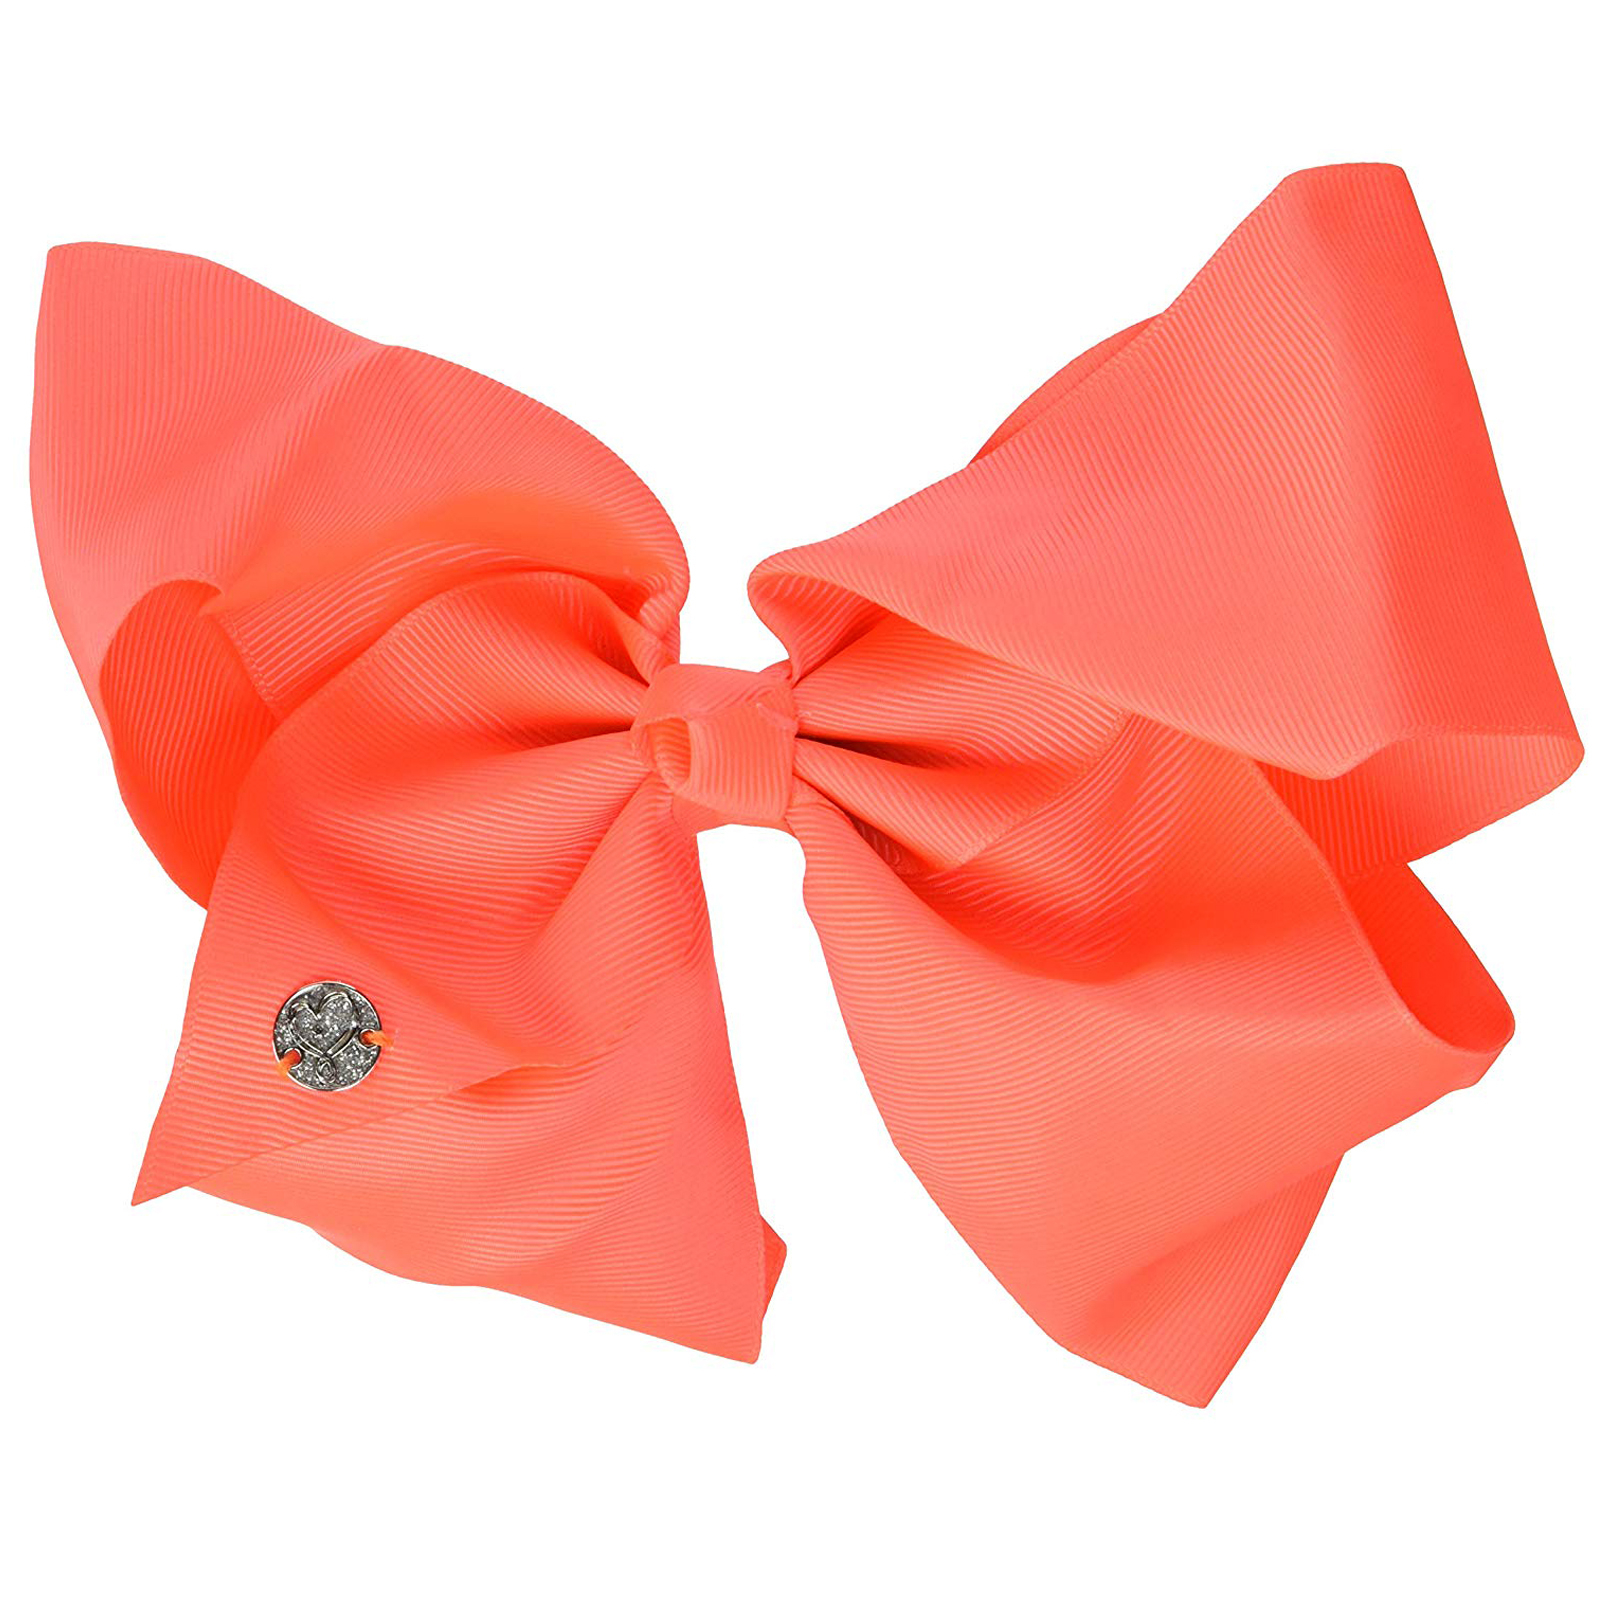 Nickelodeon JoJo Siwa Girls Large Hair Clip Style Bow Neon Coral Hair Accessory